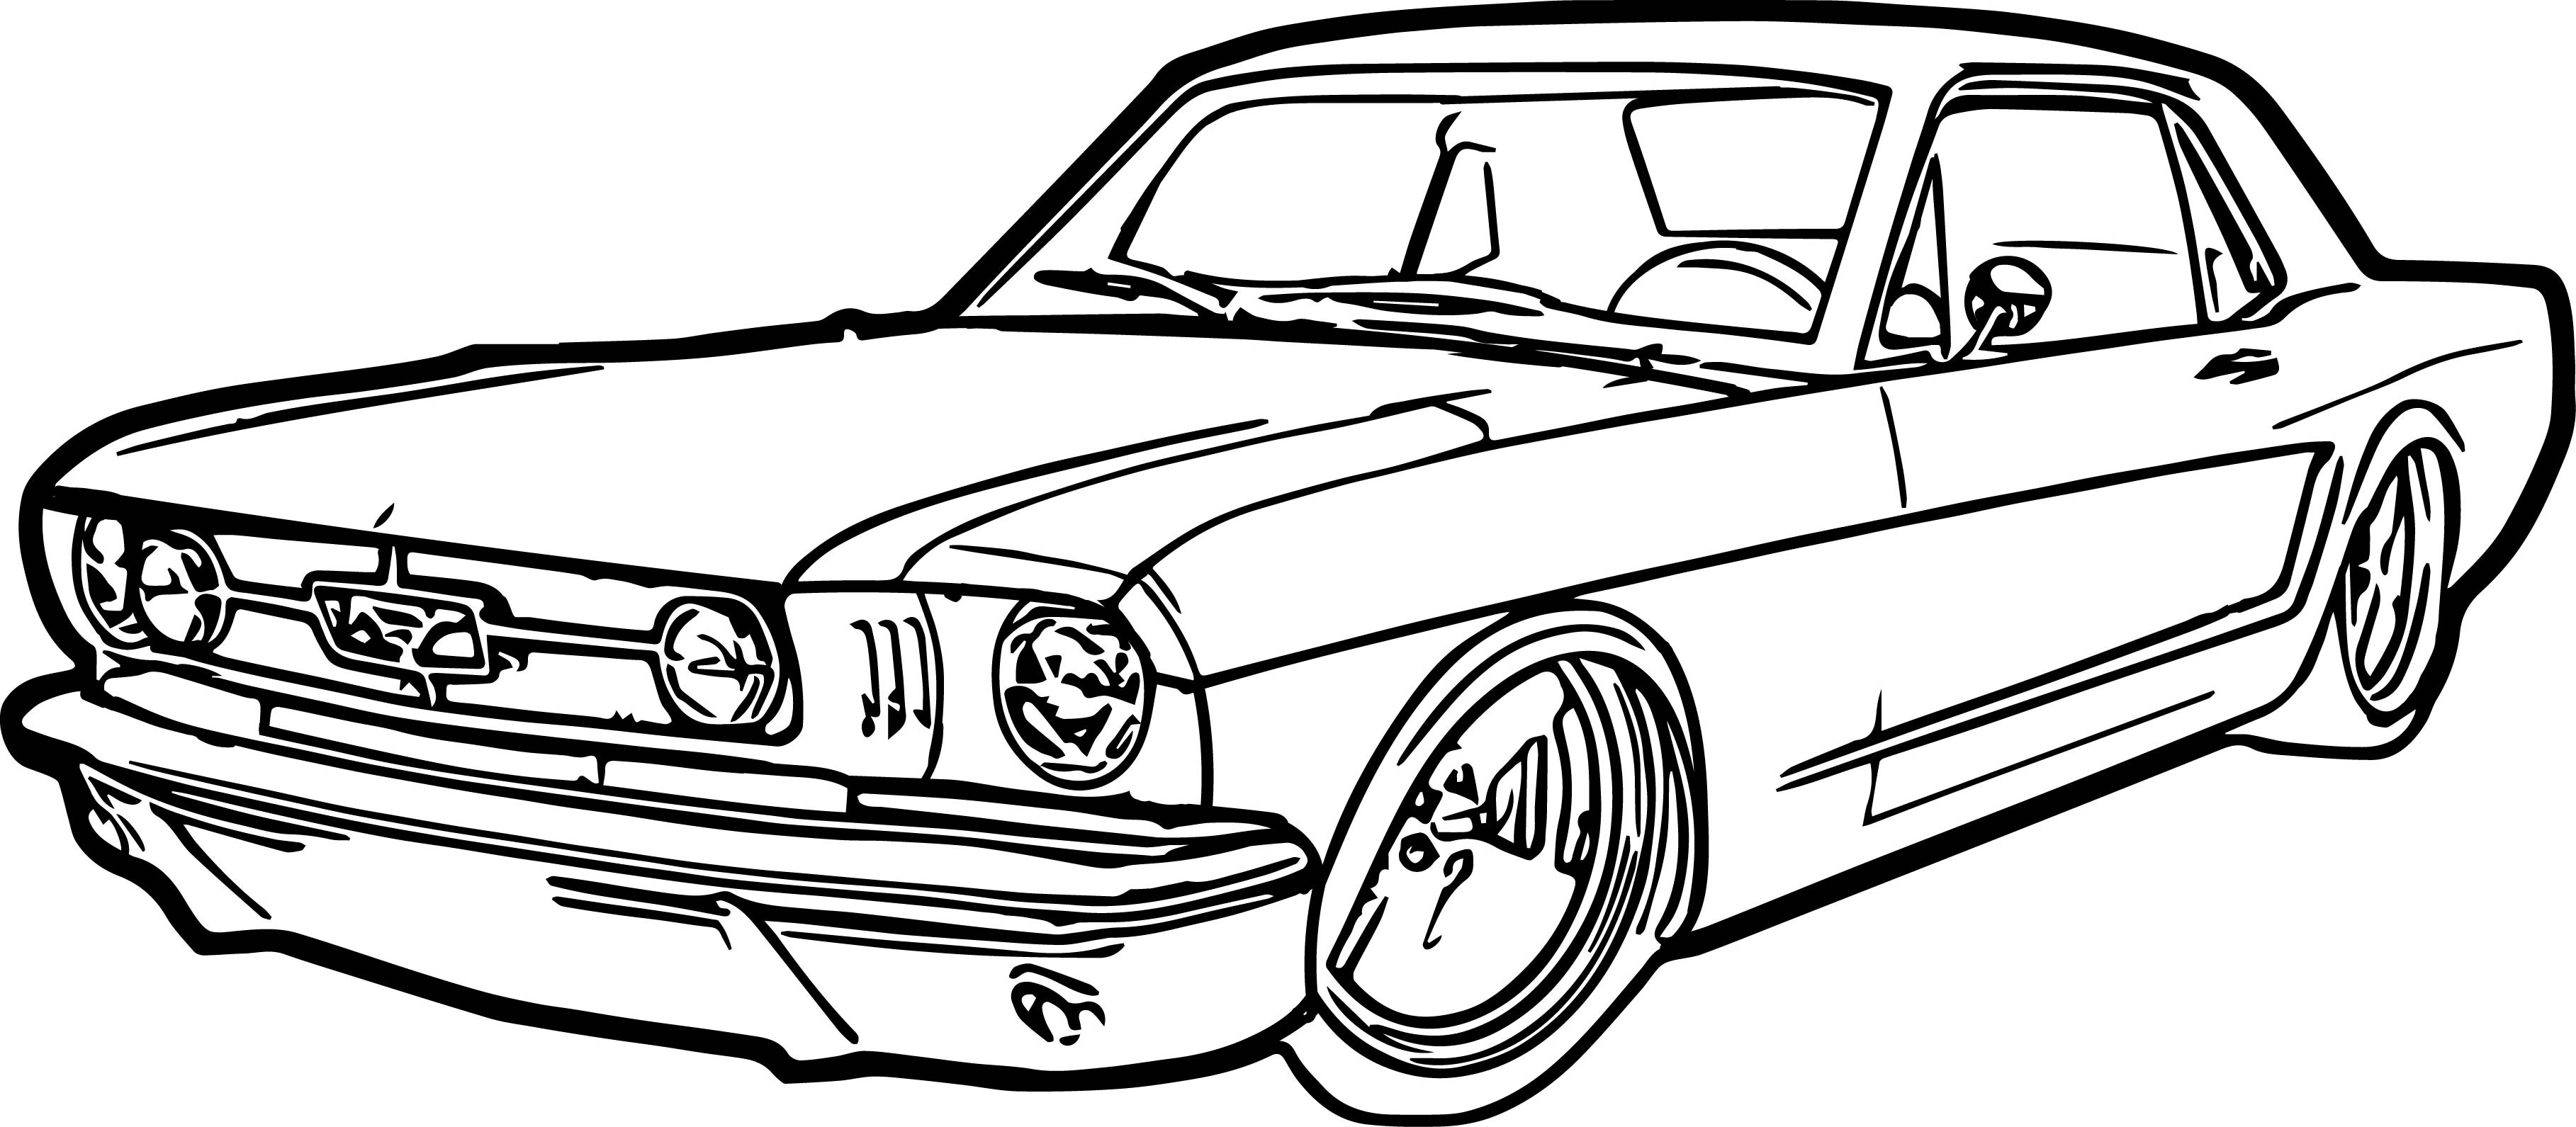 3635x1591 Classic Muscle Car Coloring Pages Lovely How To Draw Classic Cars